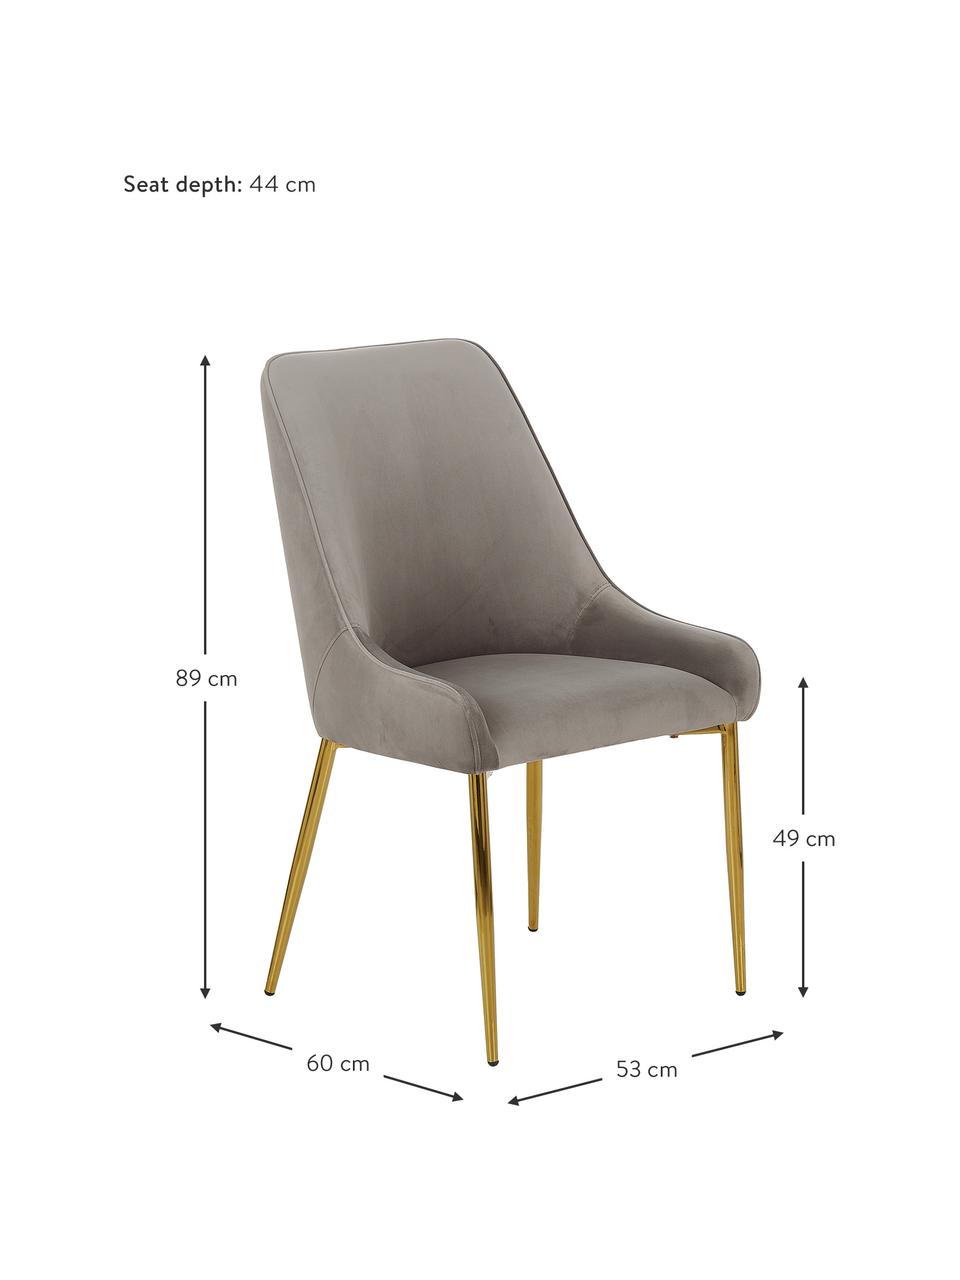 Chaise velours rembourré moderneAva, Velours taupe